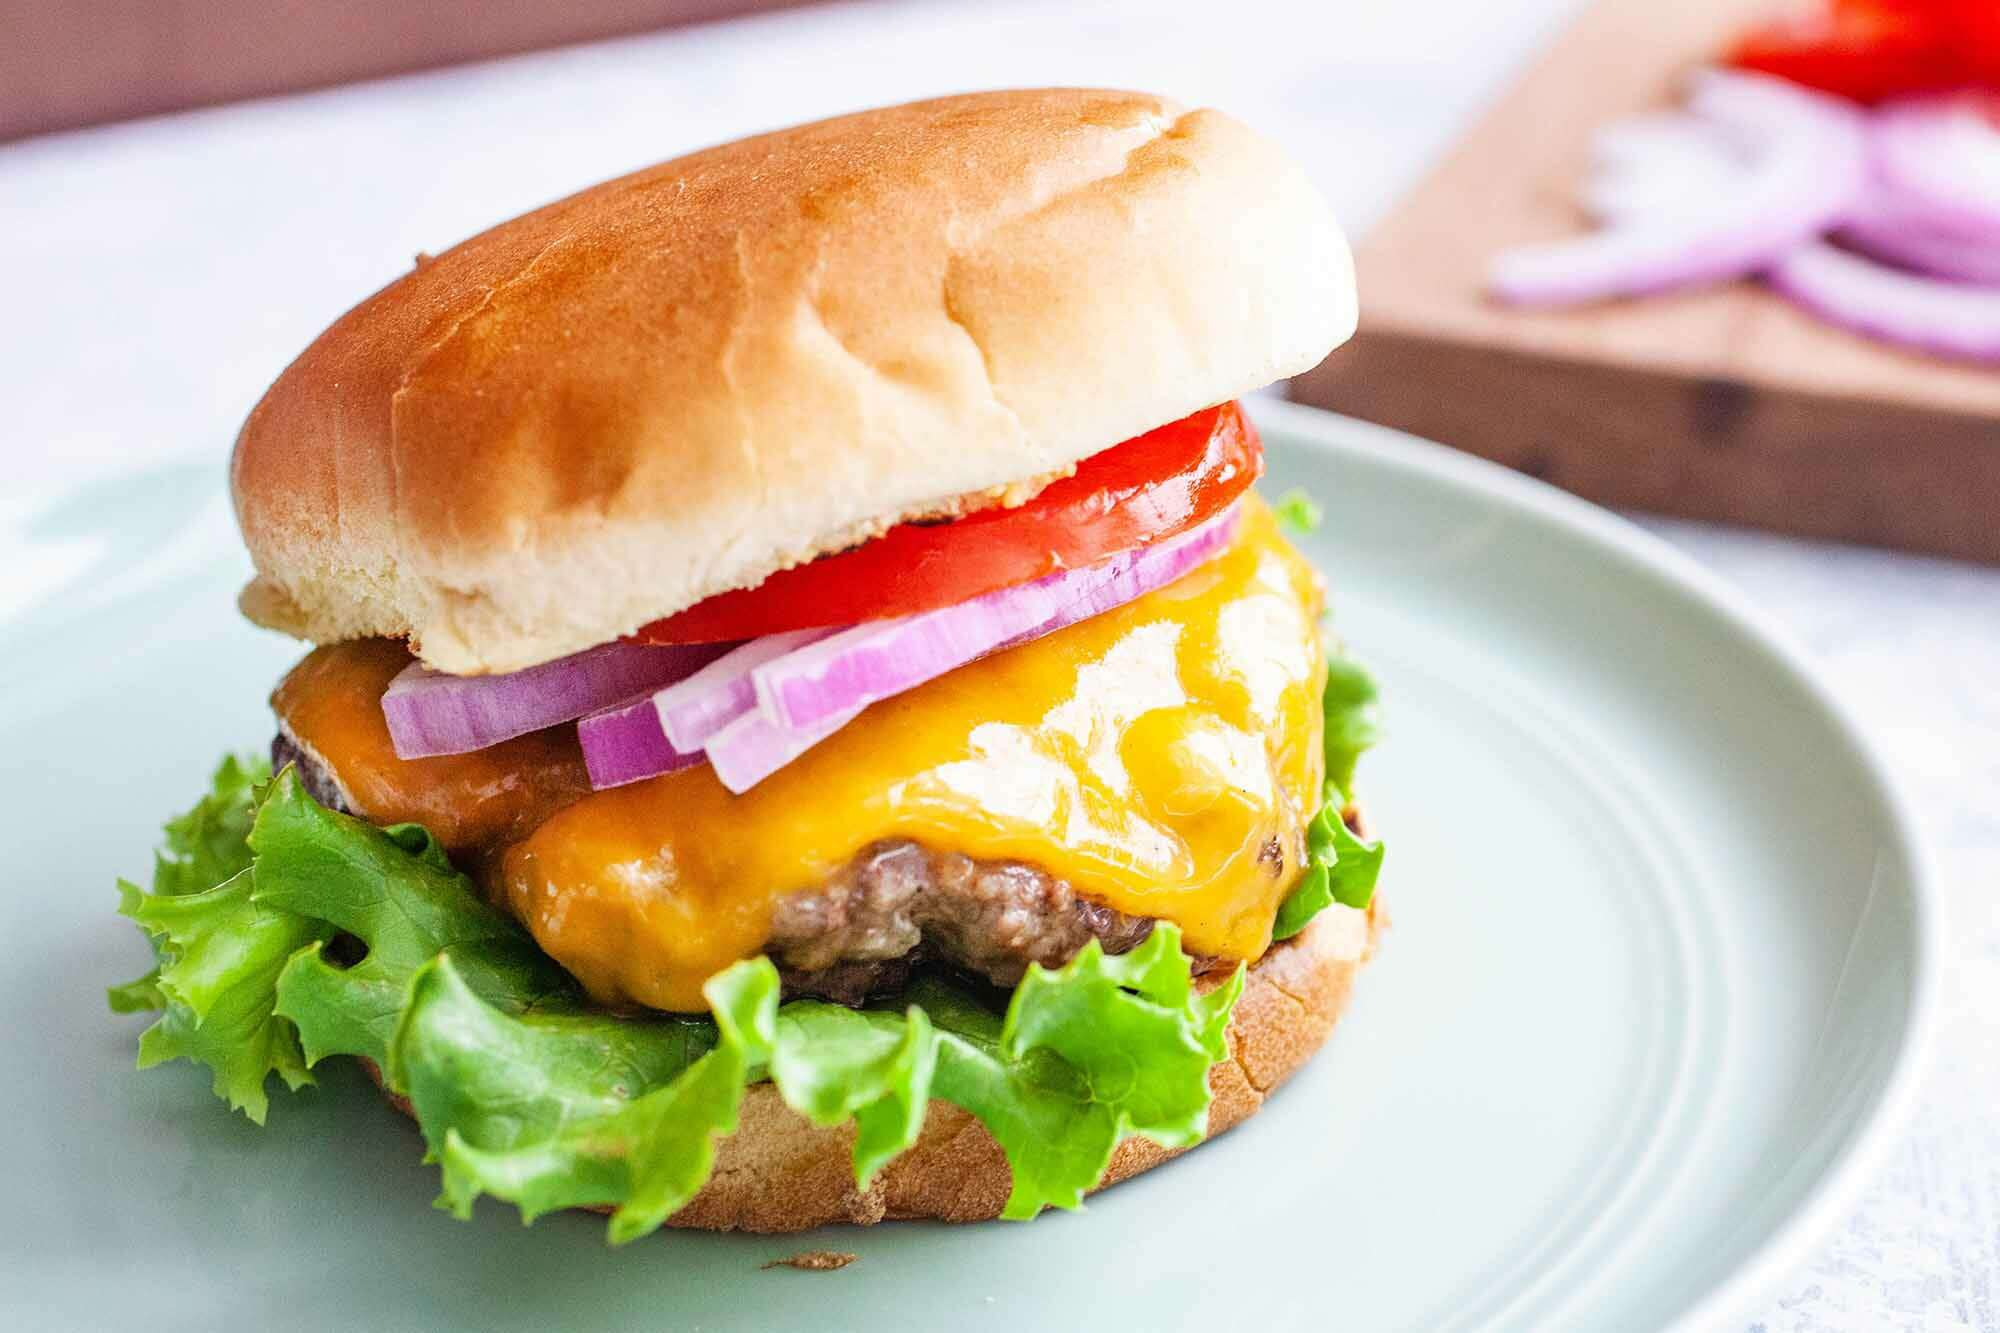 Grilled burger on a plate with cheese, onions, and tomatoes